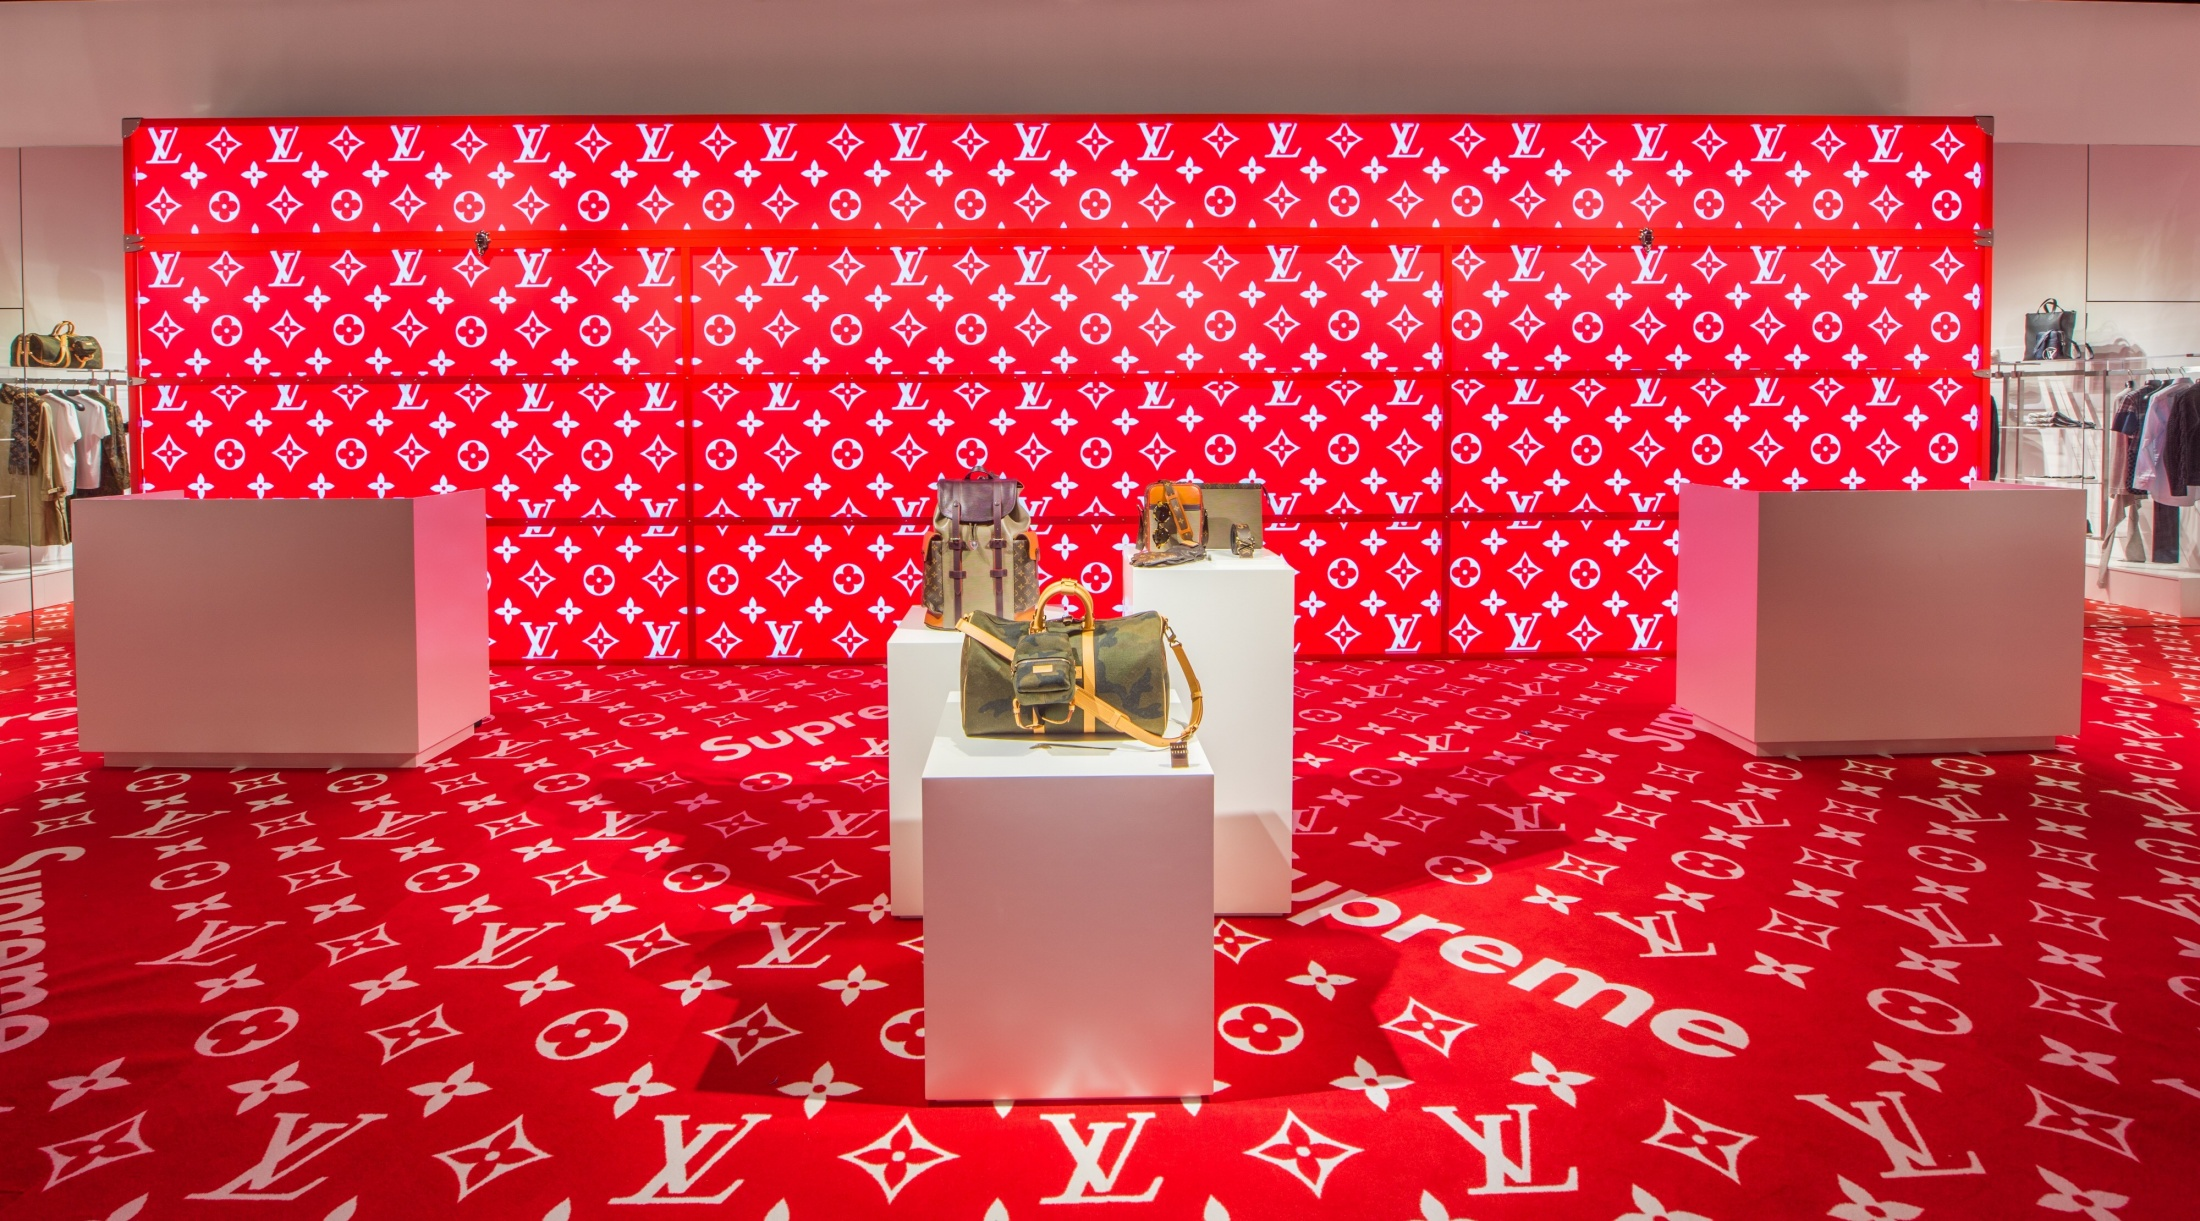 Image Media for Louis Vuitton x Supreme